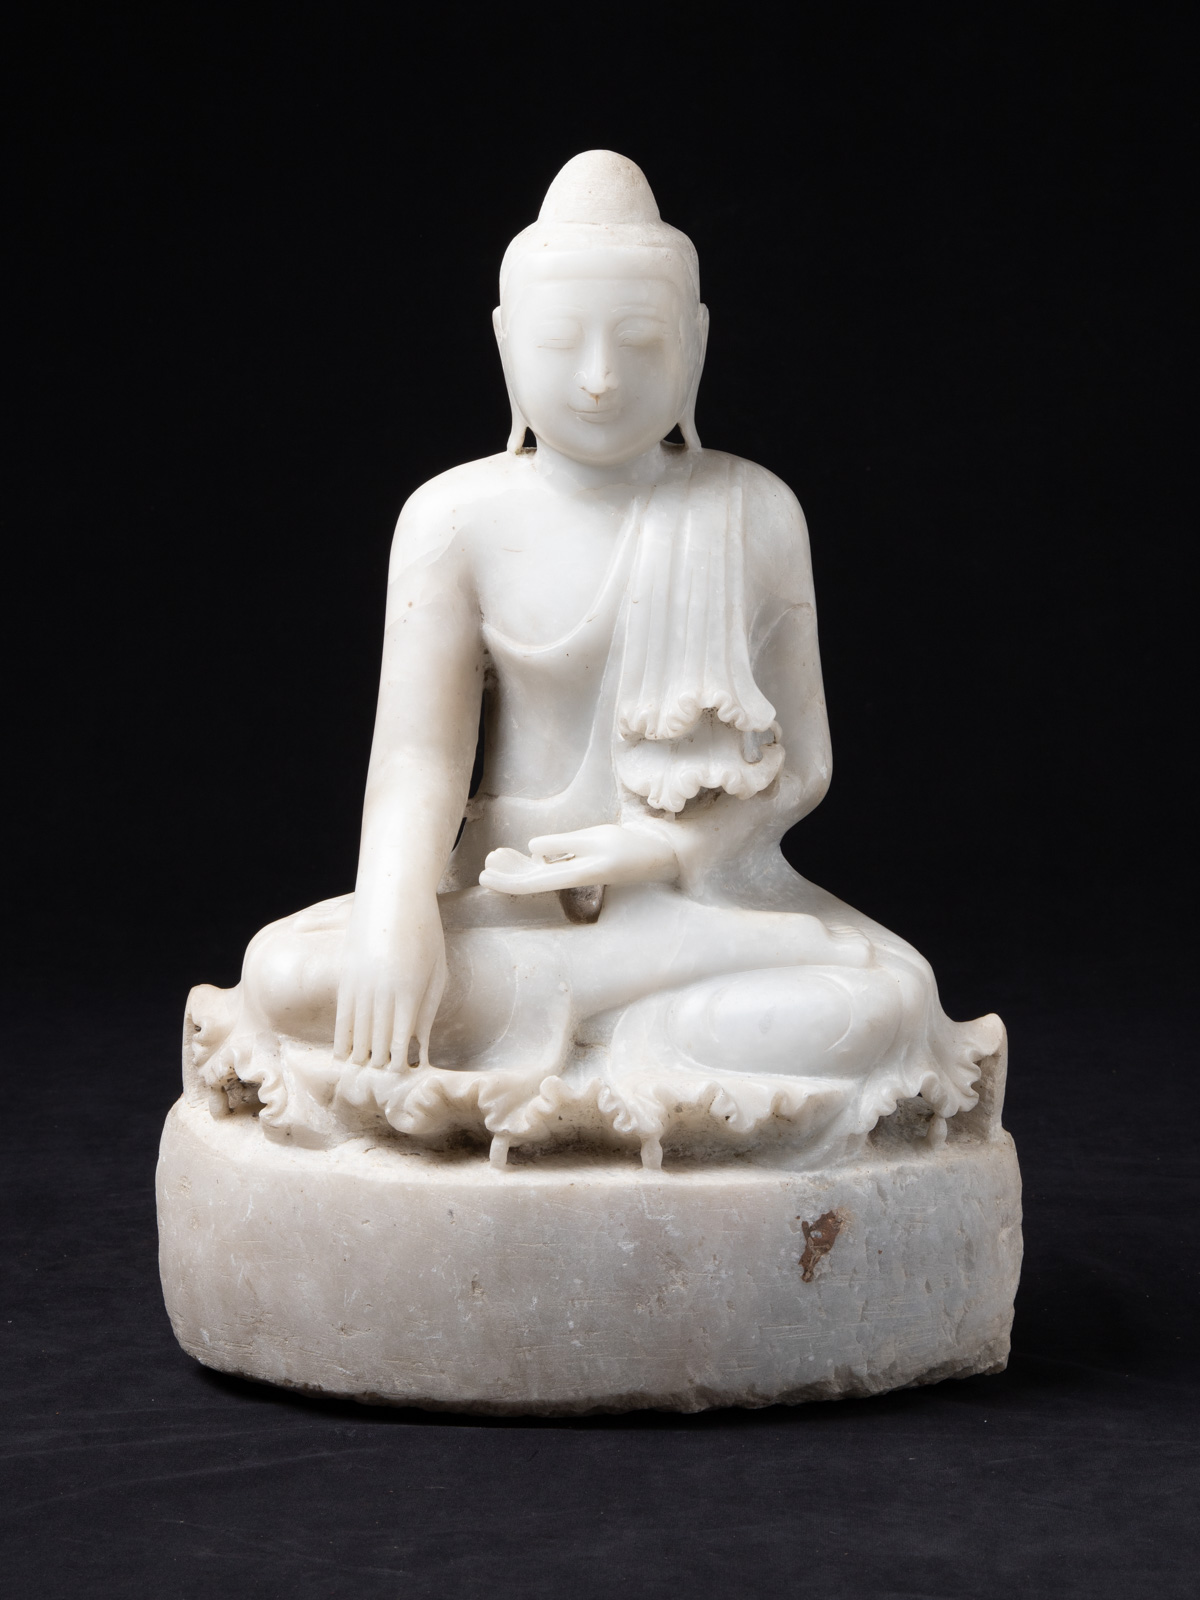 Old marble Mandalay Buddha statue from Burma made from Marble